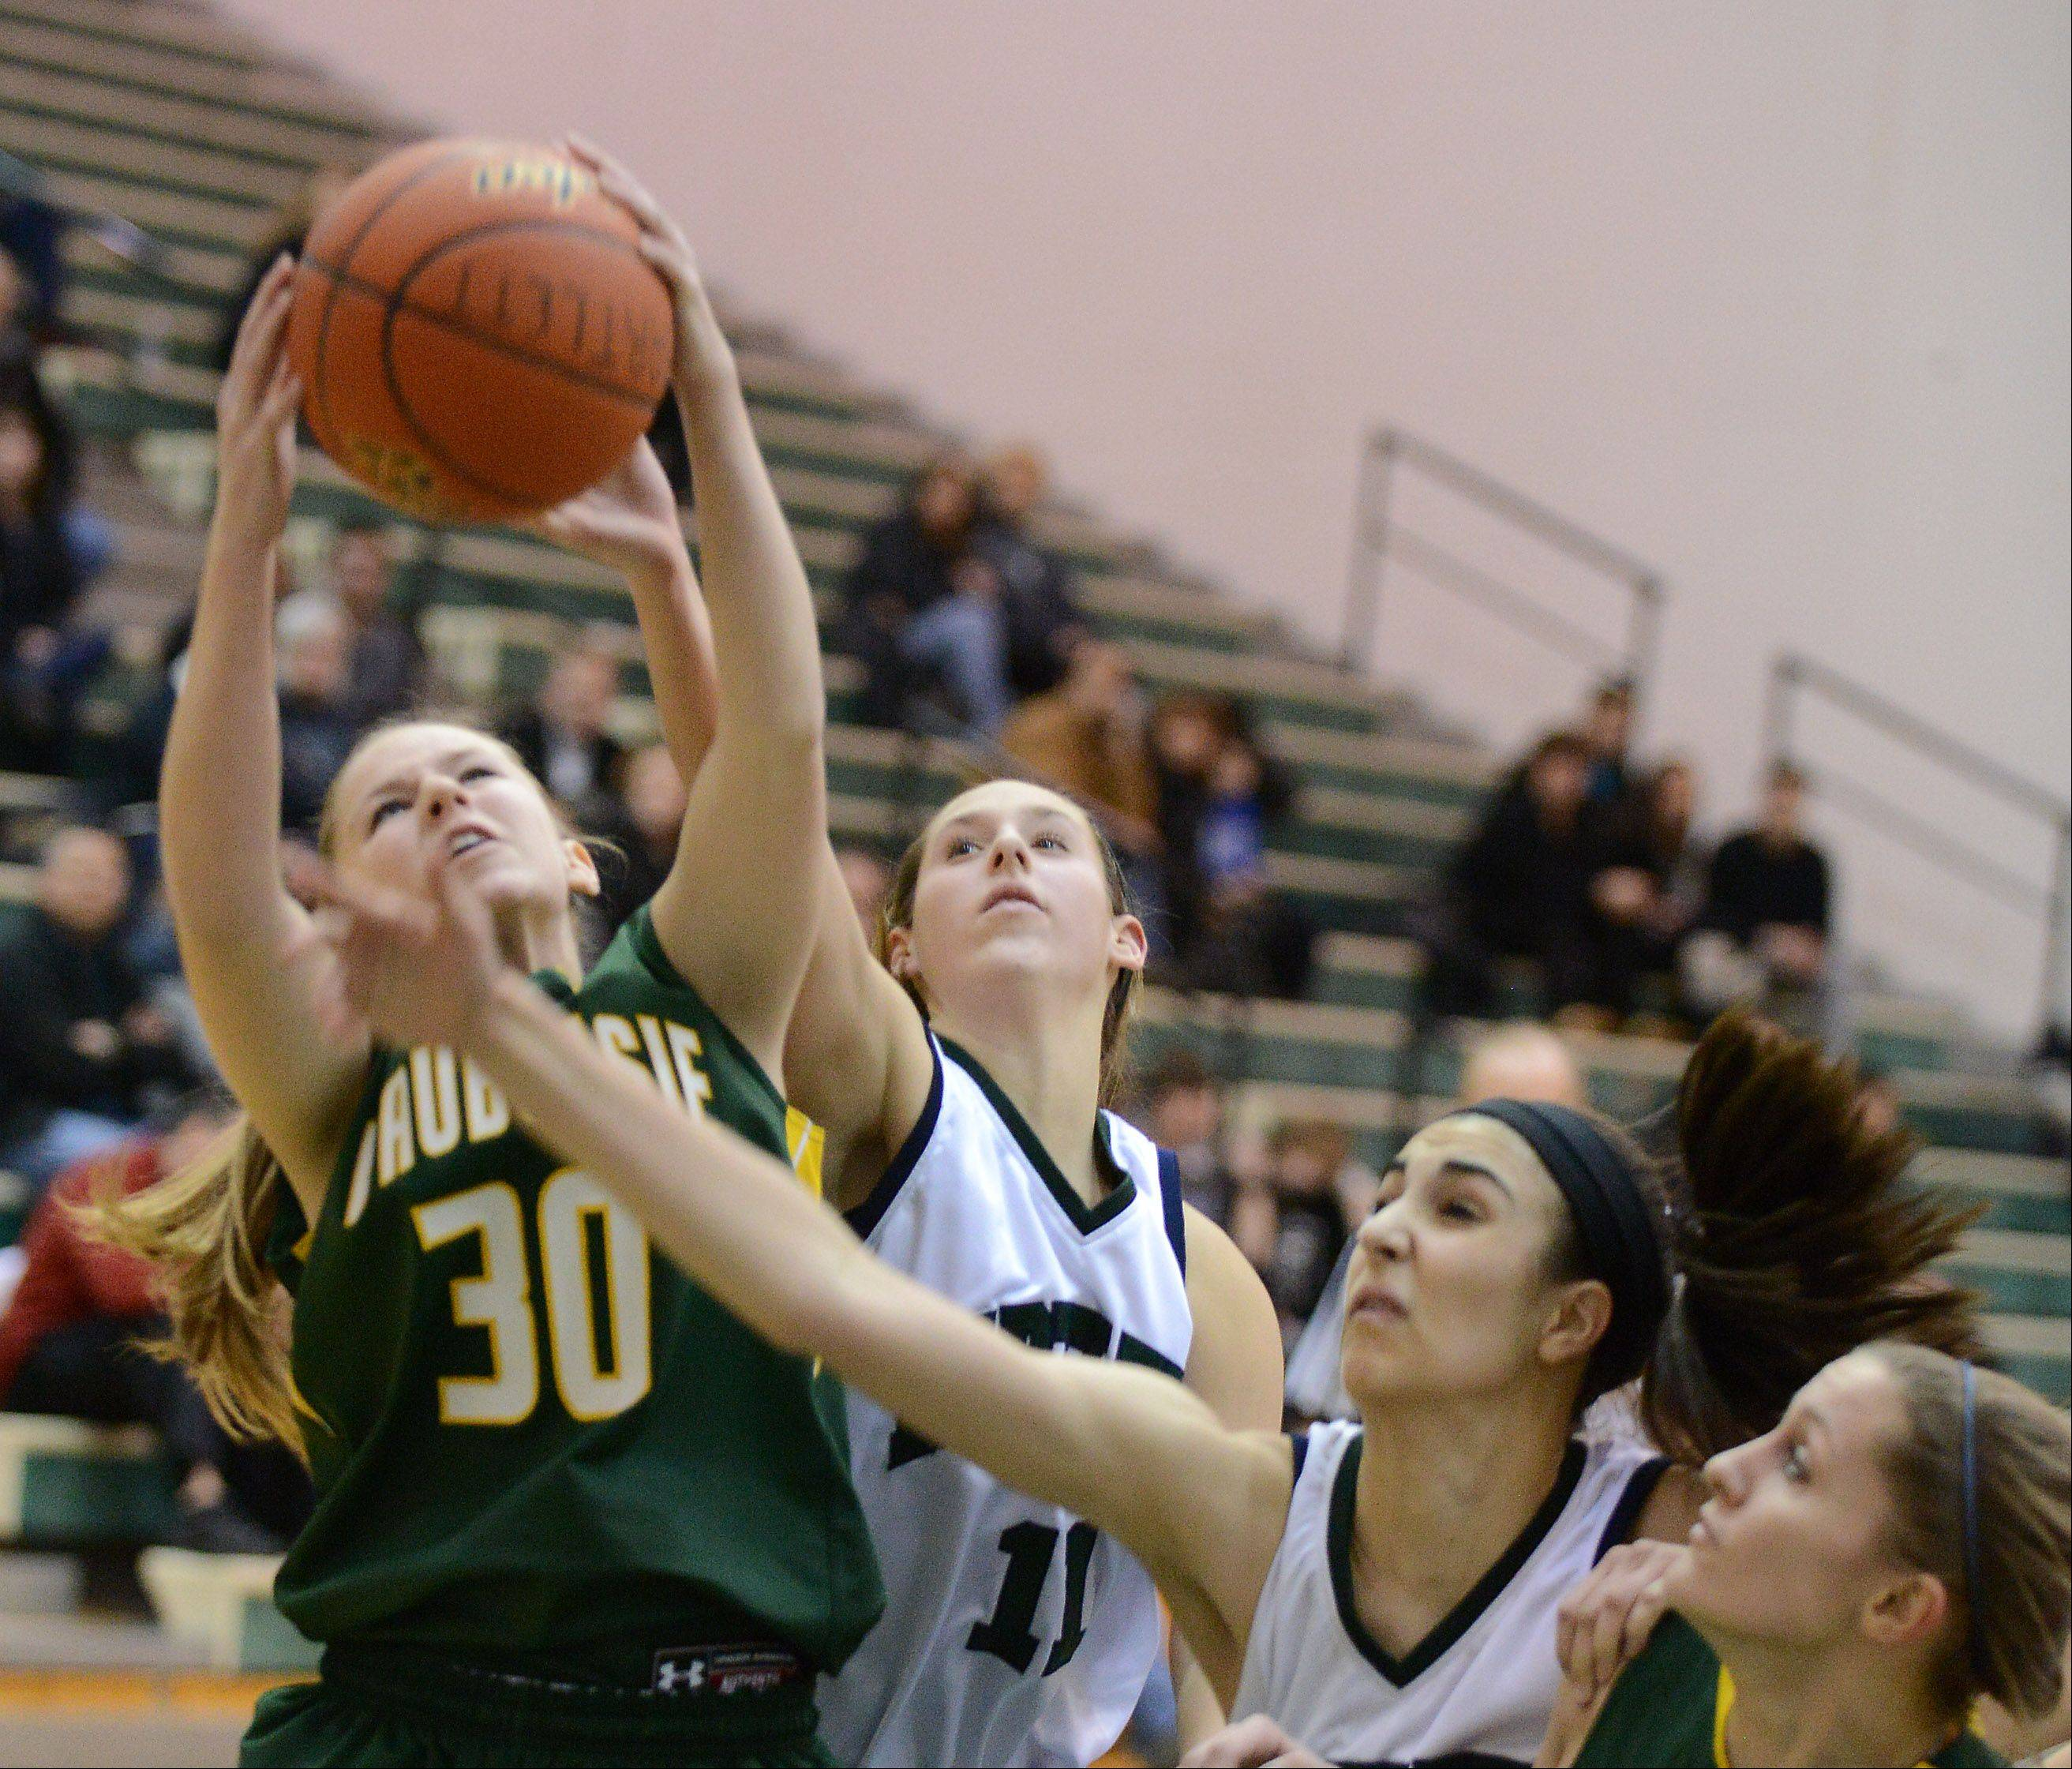 Images from the Waubonsie Valley vs. Bartlett girls basketball game Thursday, January 23, 2014.